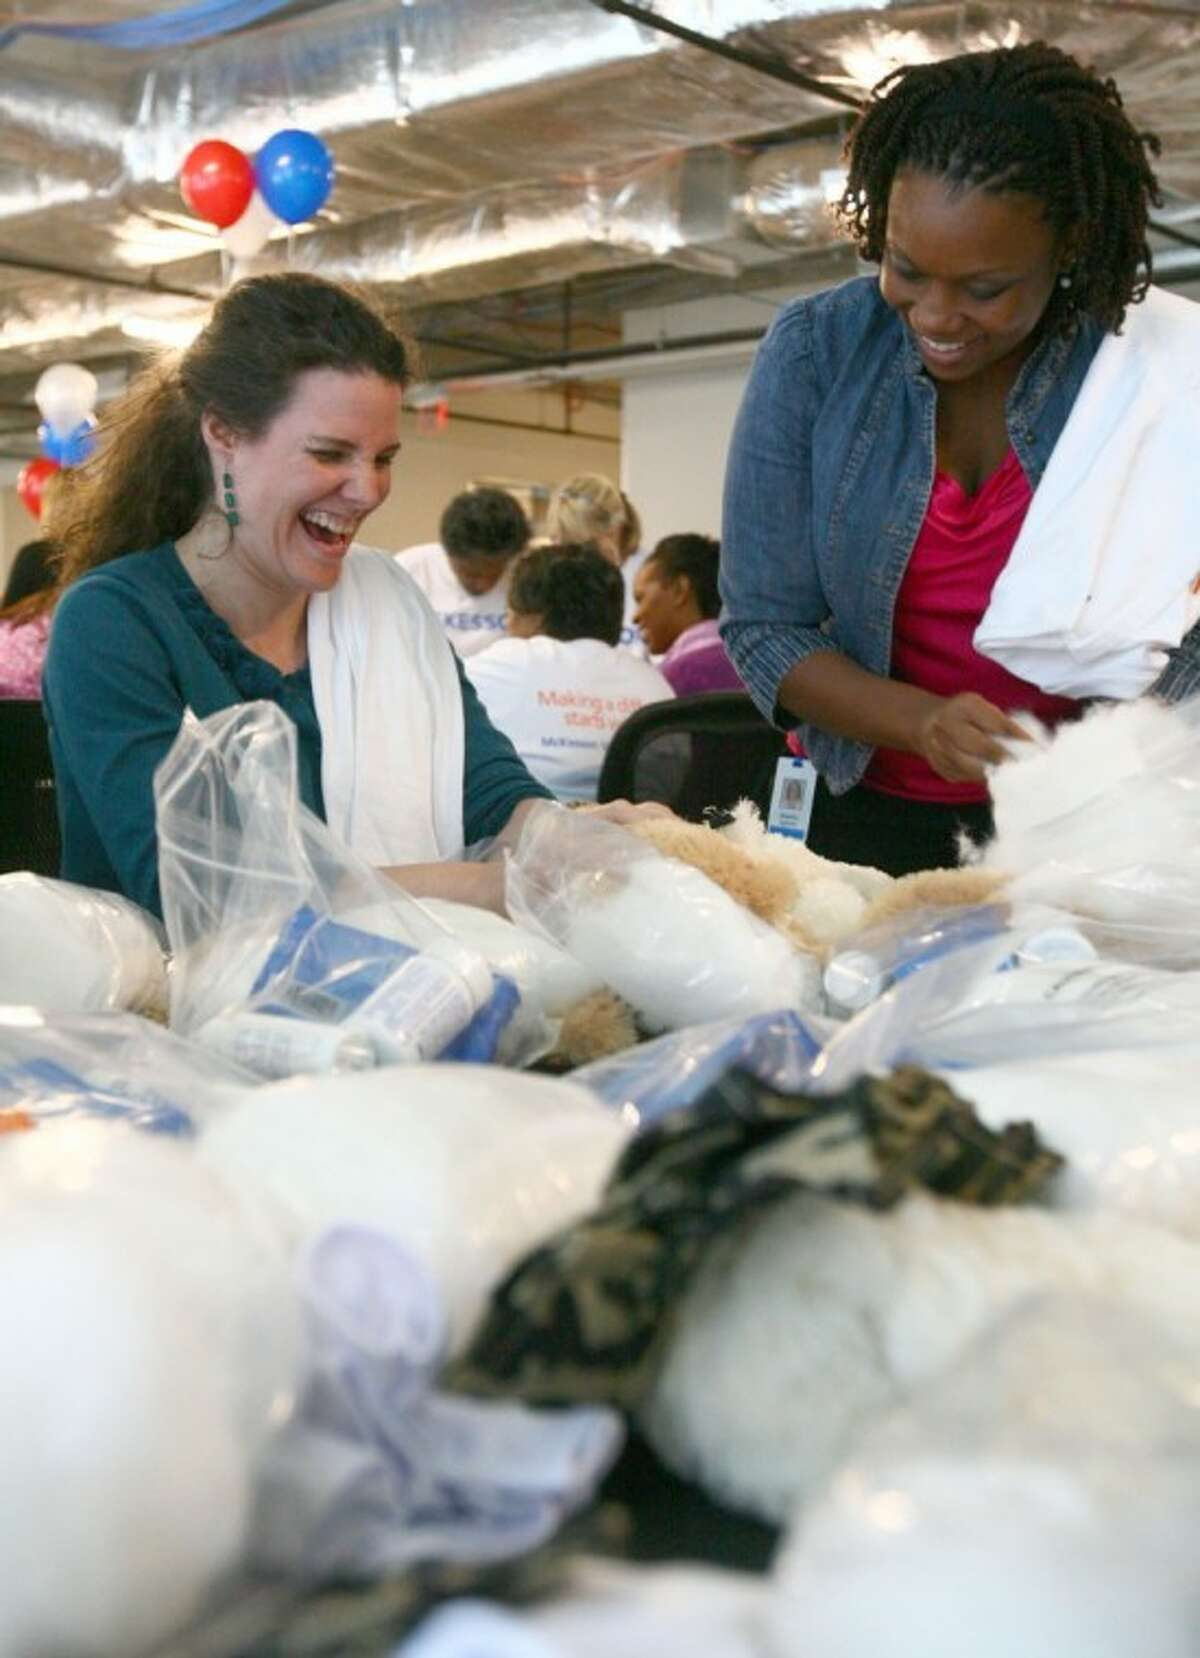 McKesson employees Kally Colburn, left, a product development manager from The Woodlands, and Makafui Agbotui, a projects manager from Houston, assemble care packages at their office in The Woodlands for Operation Gratitude.